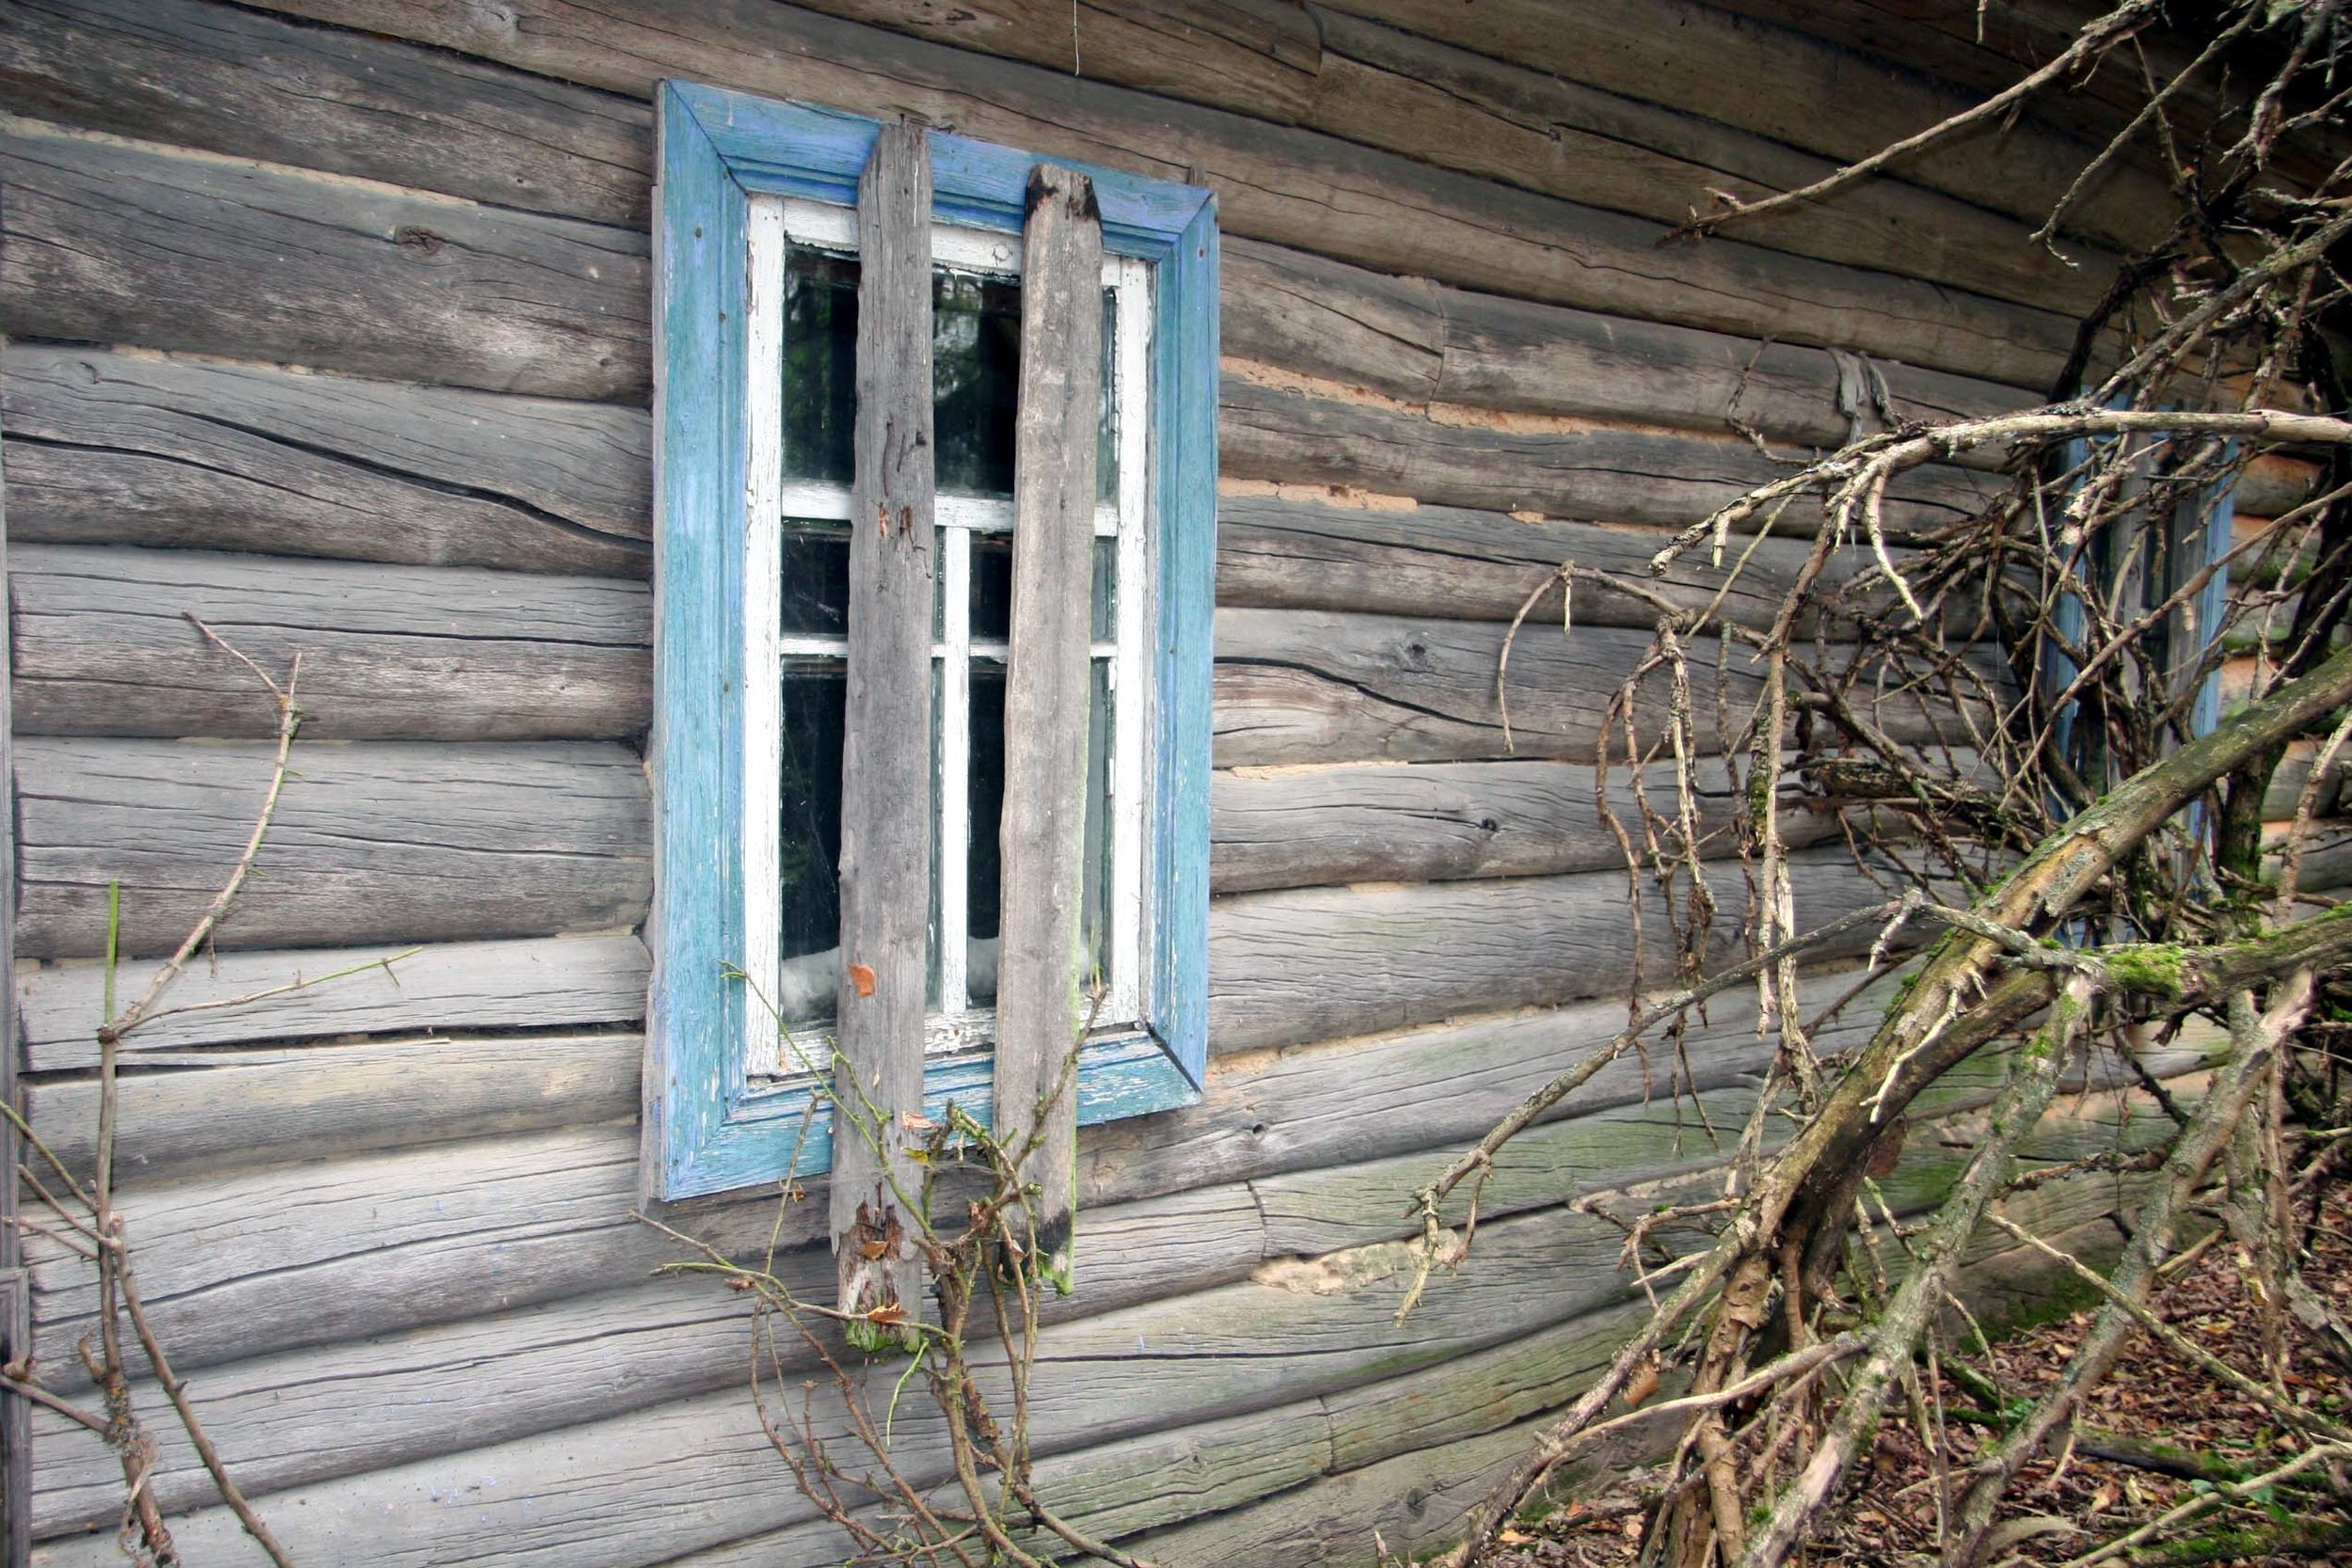 Abandoned house within the Chernobyl exclusion zone